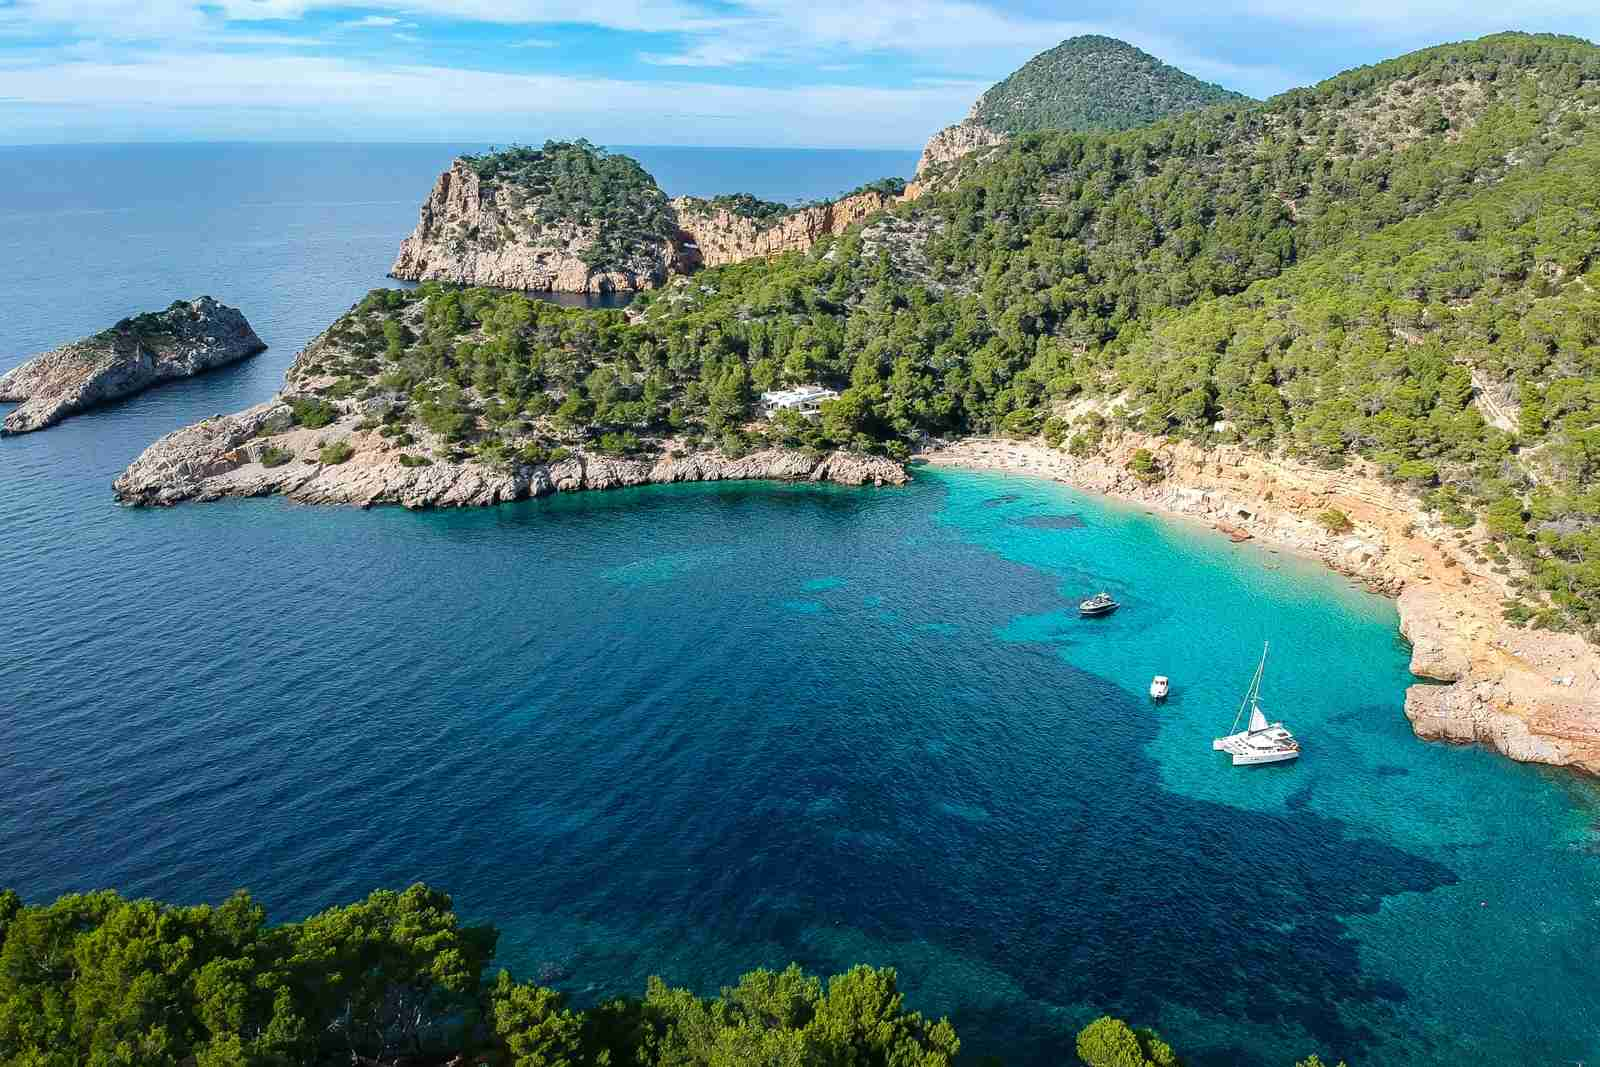 Cala Saladeta. (Photo by Javier Duran/Getty Images)